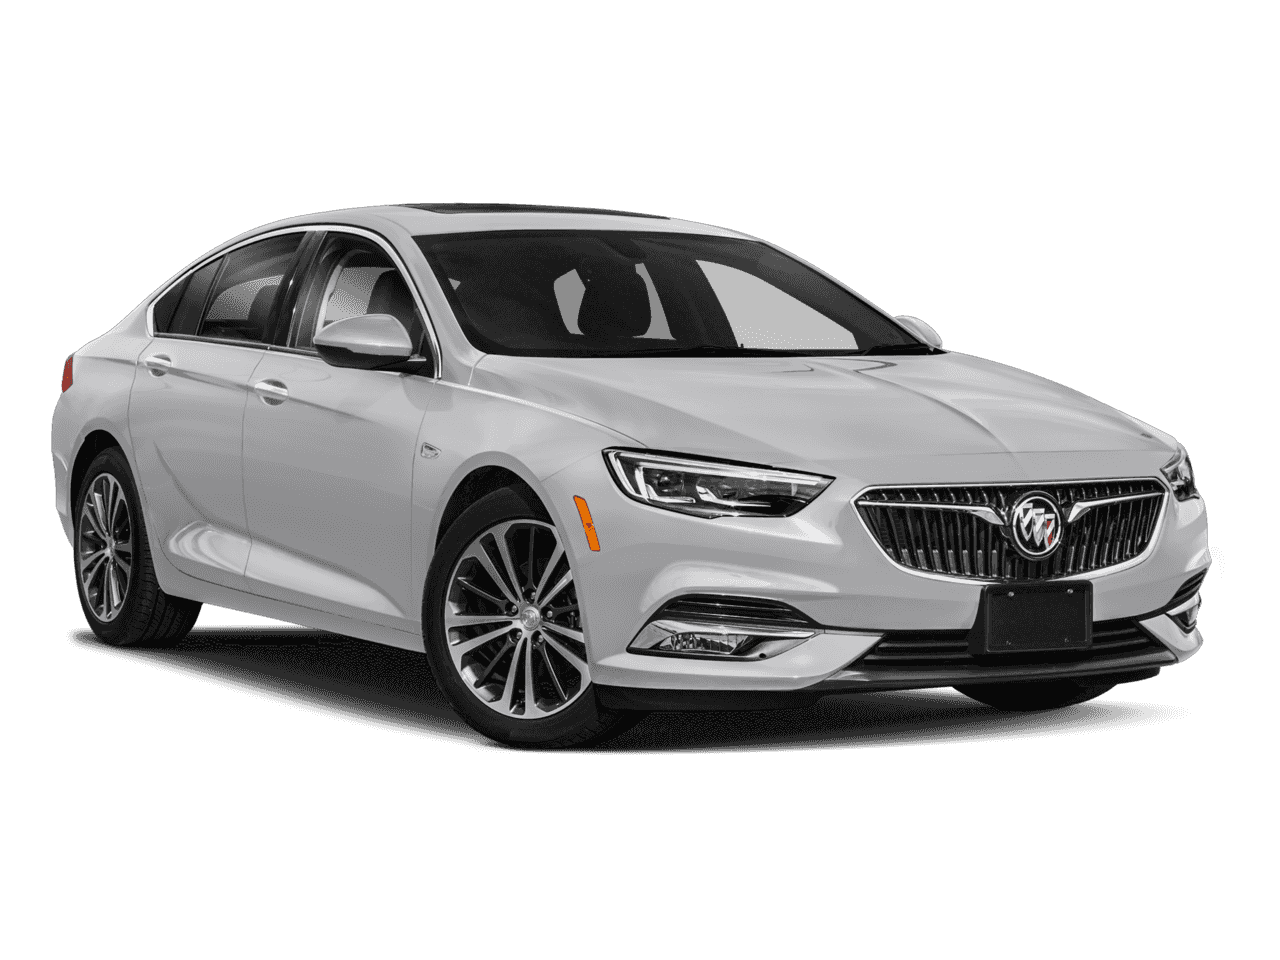 2018 Buick Regal Preferred